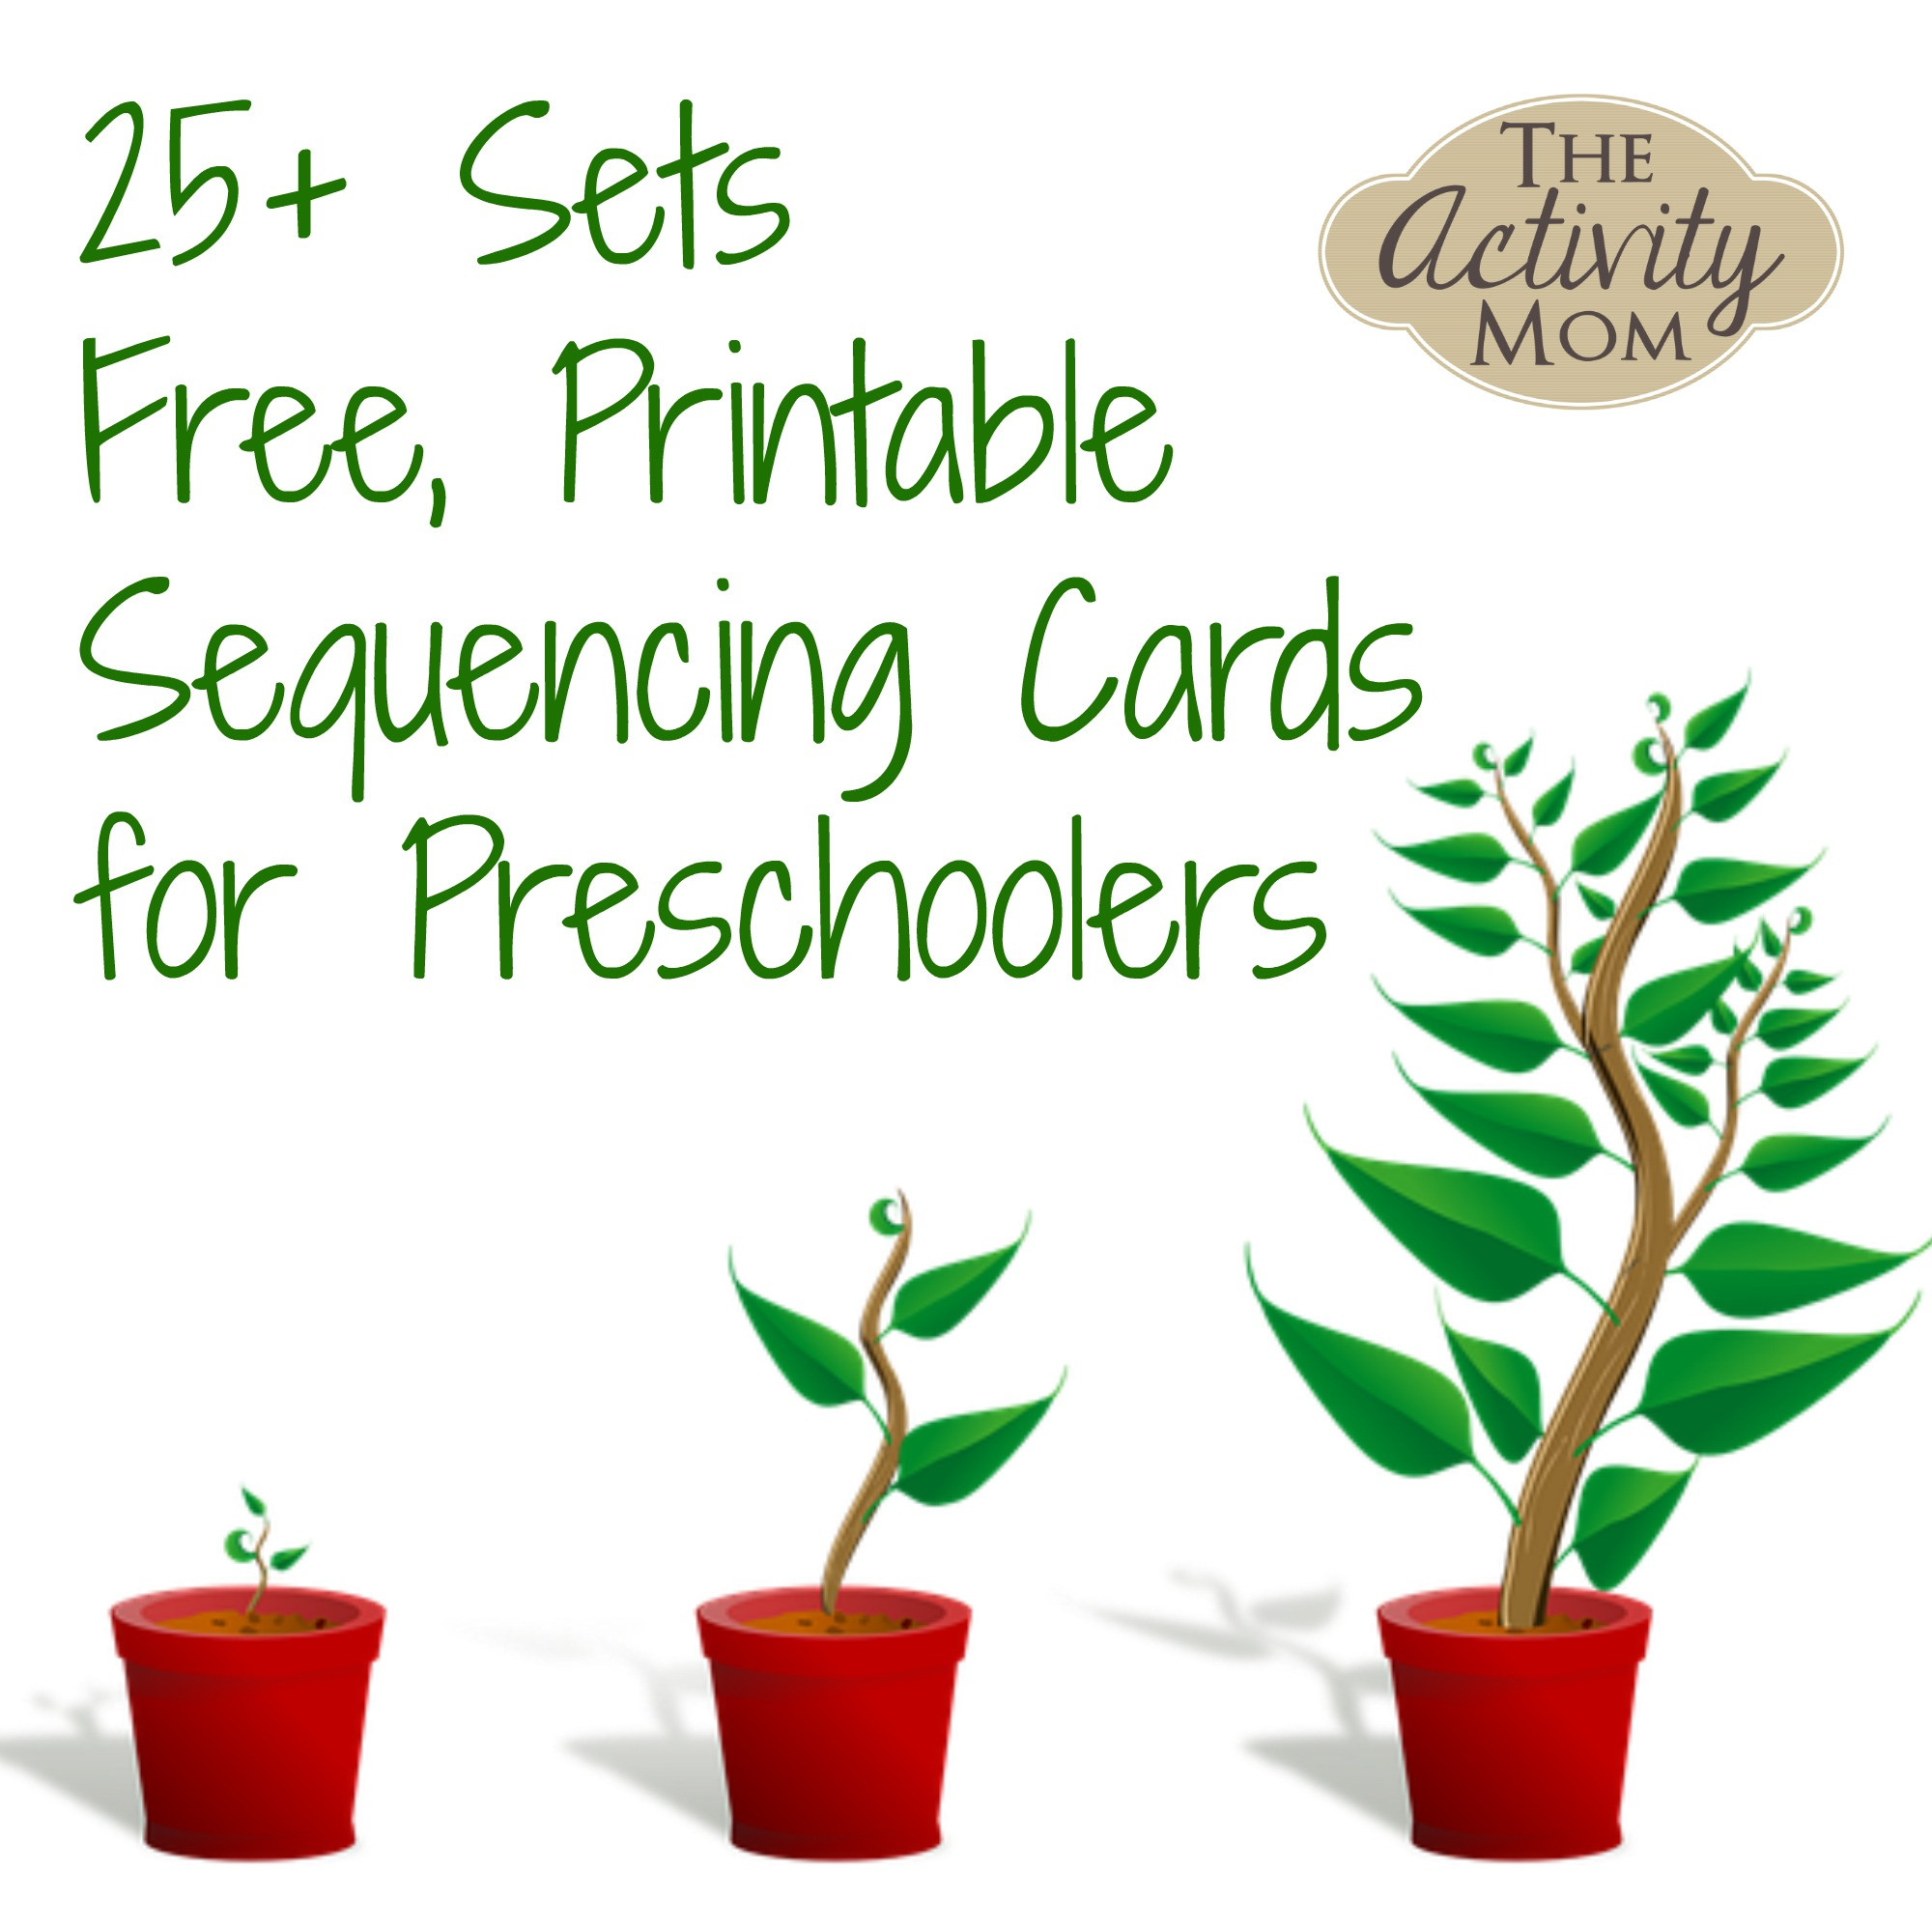 Printable Sequence Worksheets the Activity Mom Sequencing Cards Printable the Activity Mom